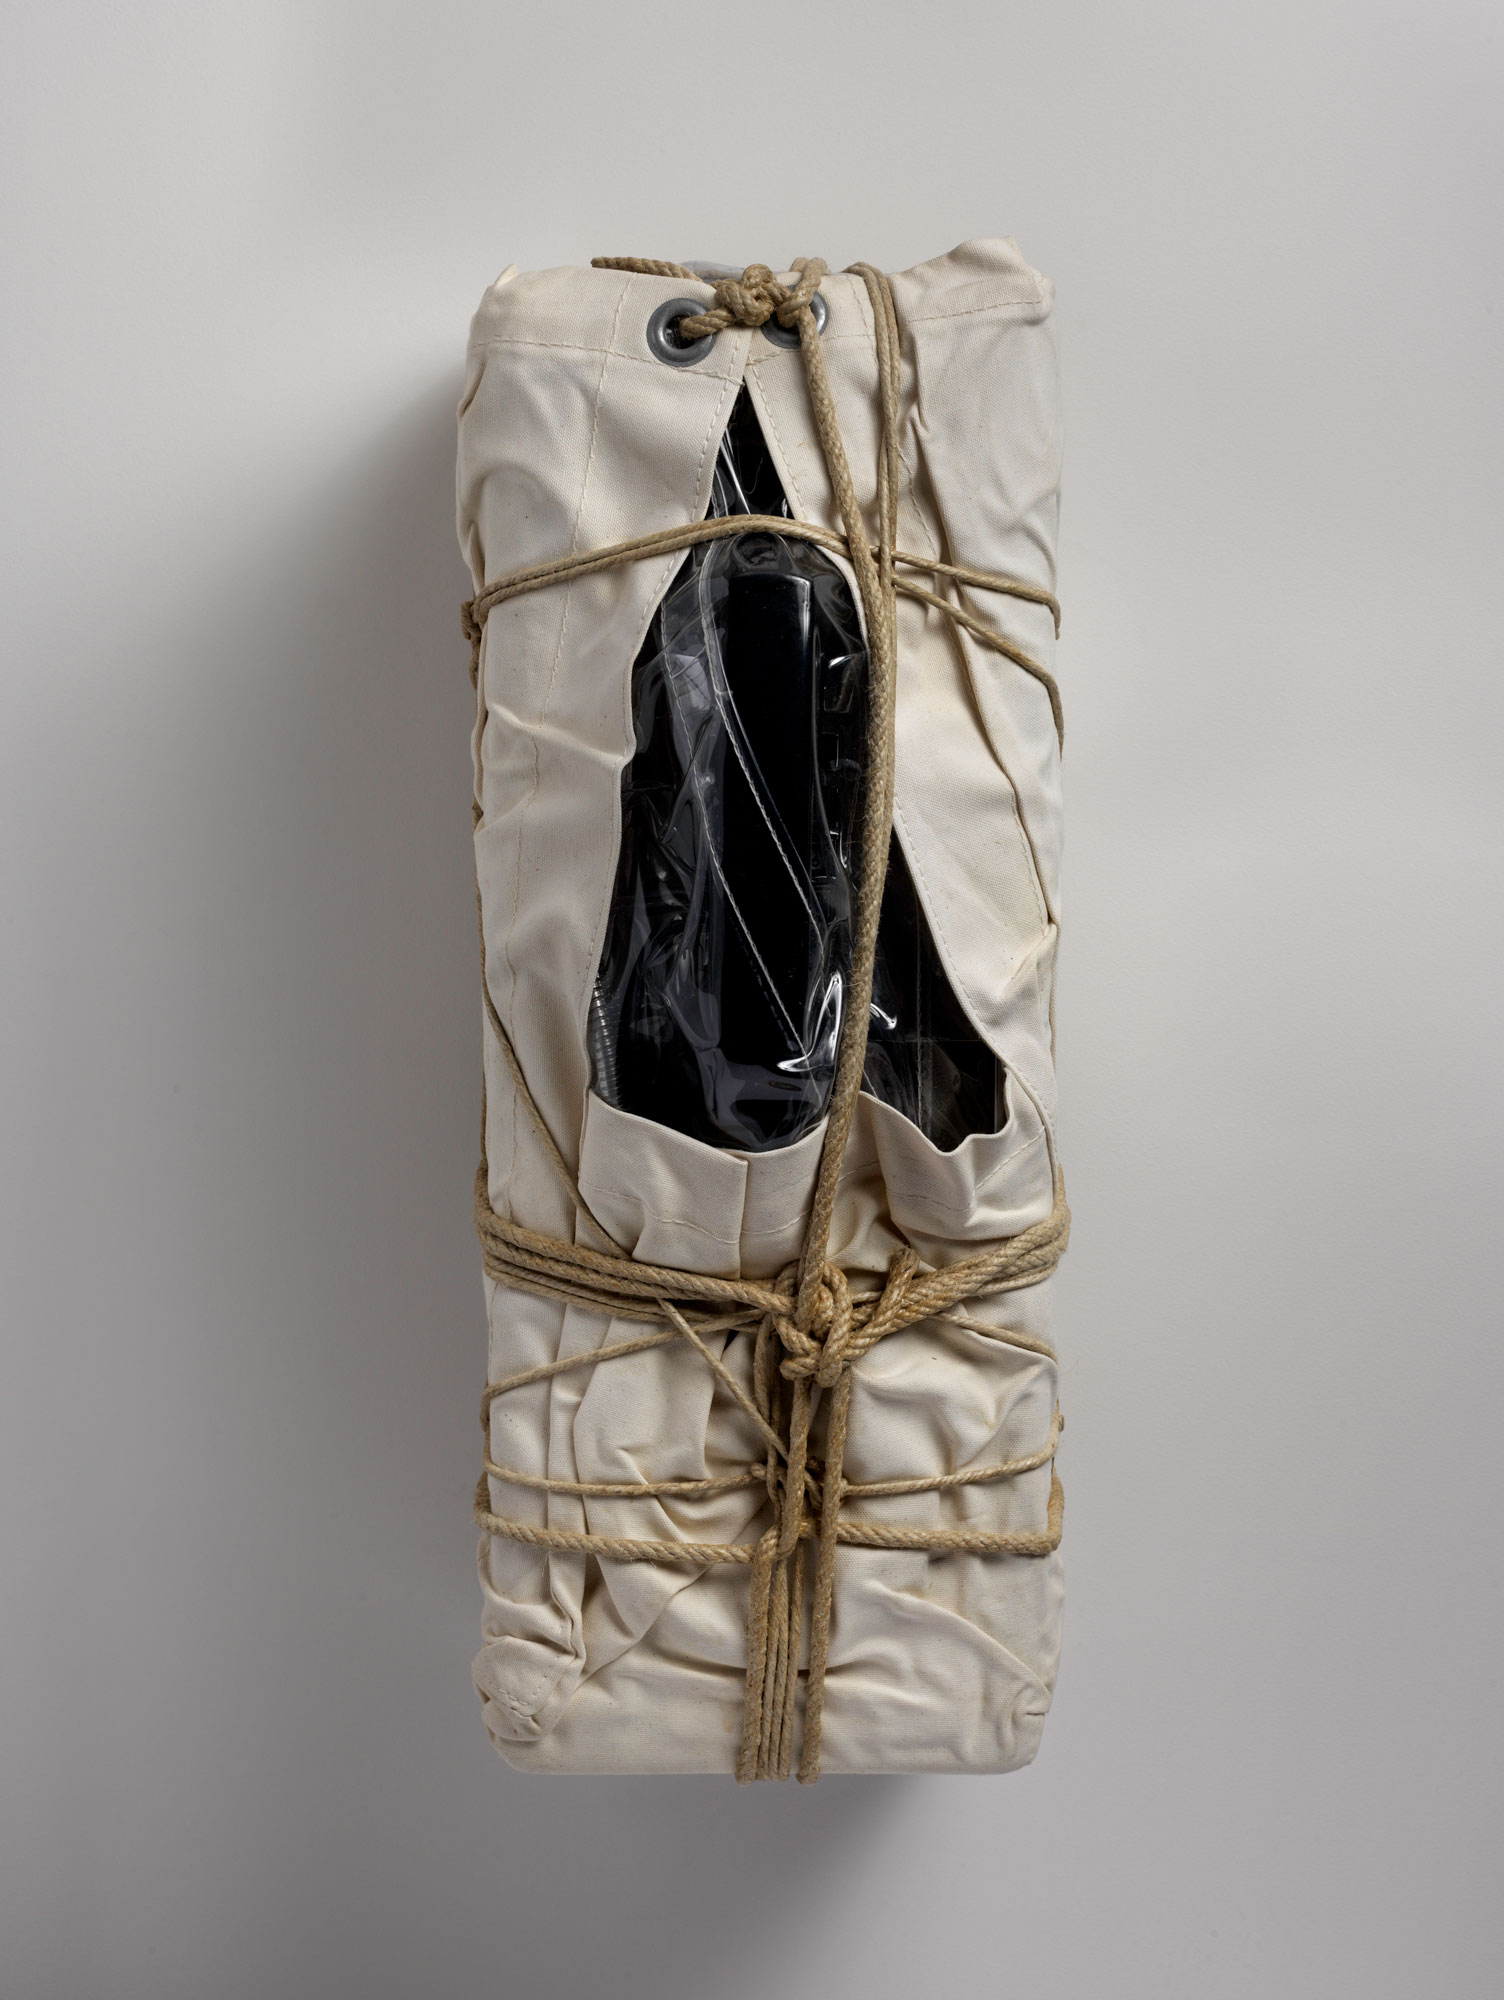 Photograph of a payphone wrapped in sackcloth with rope and twine.